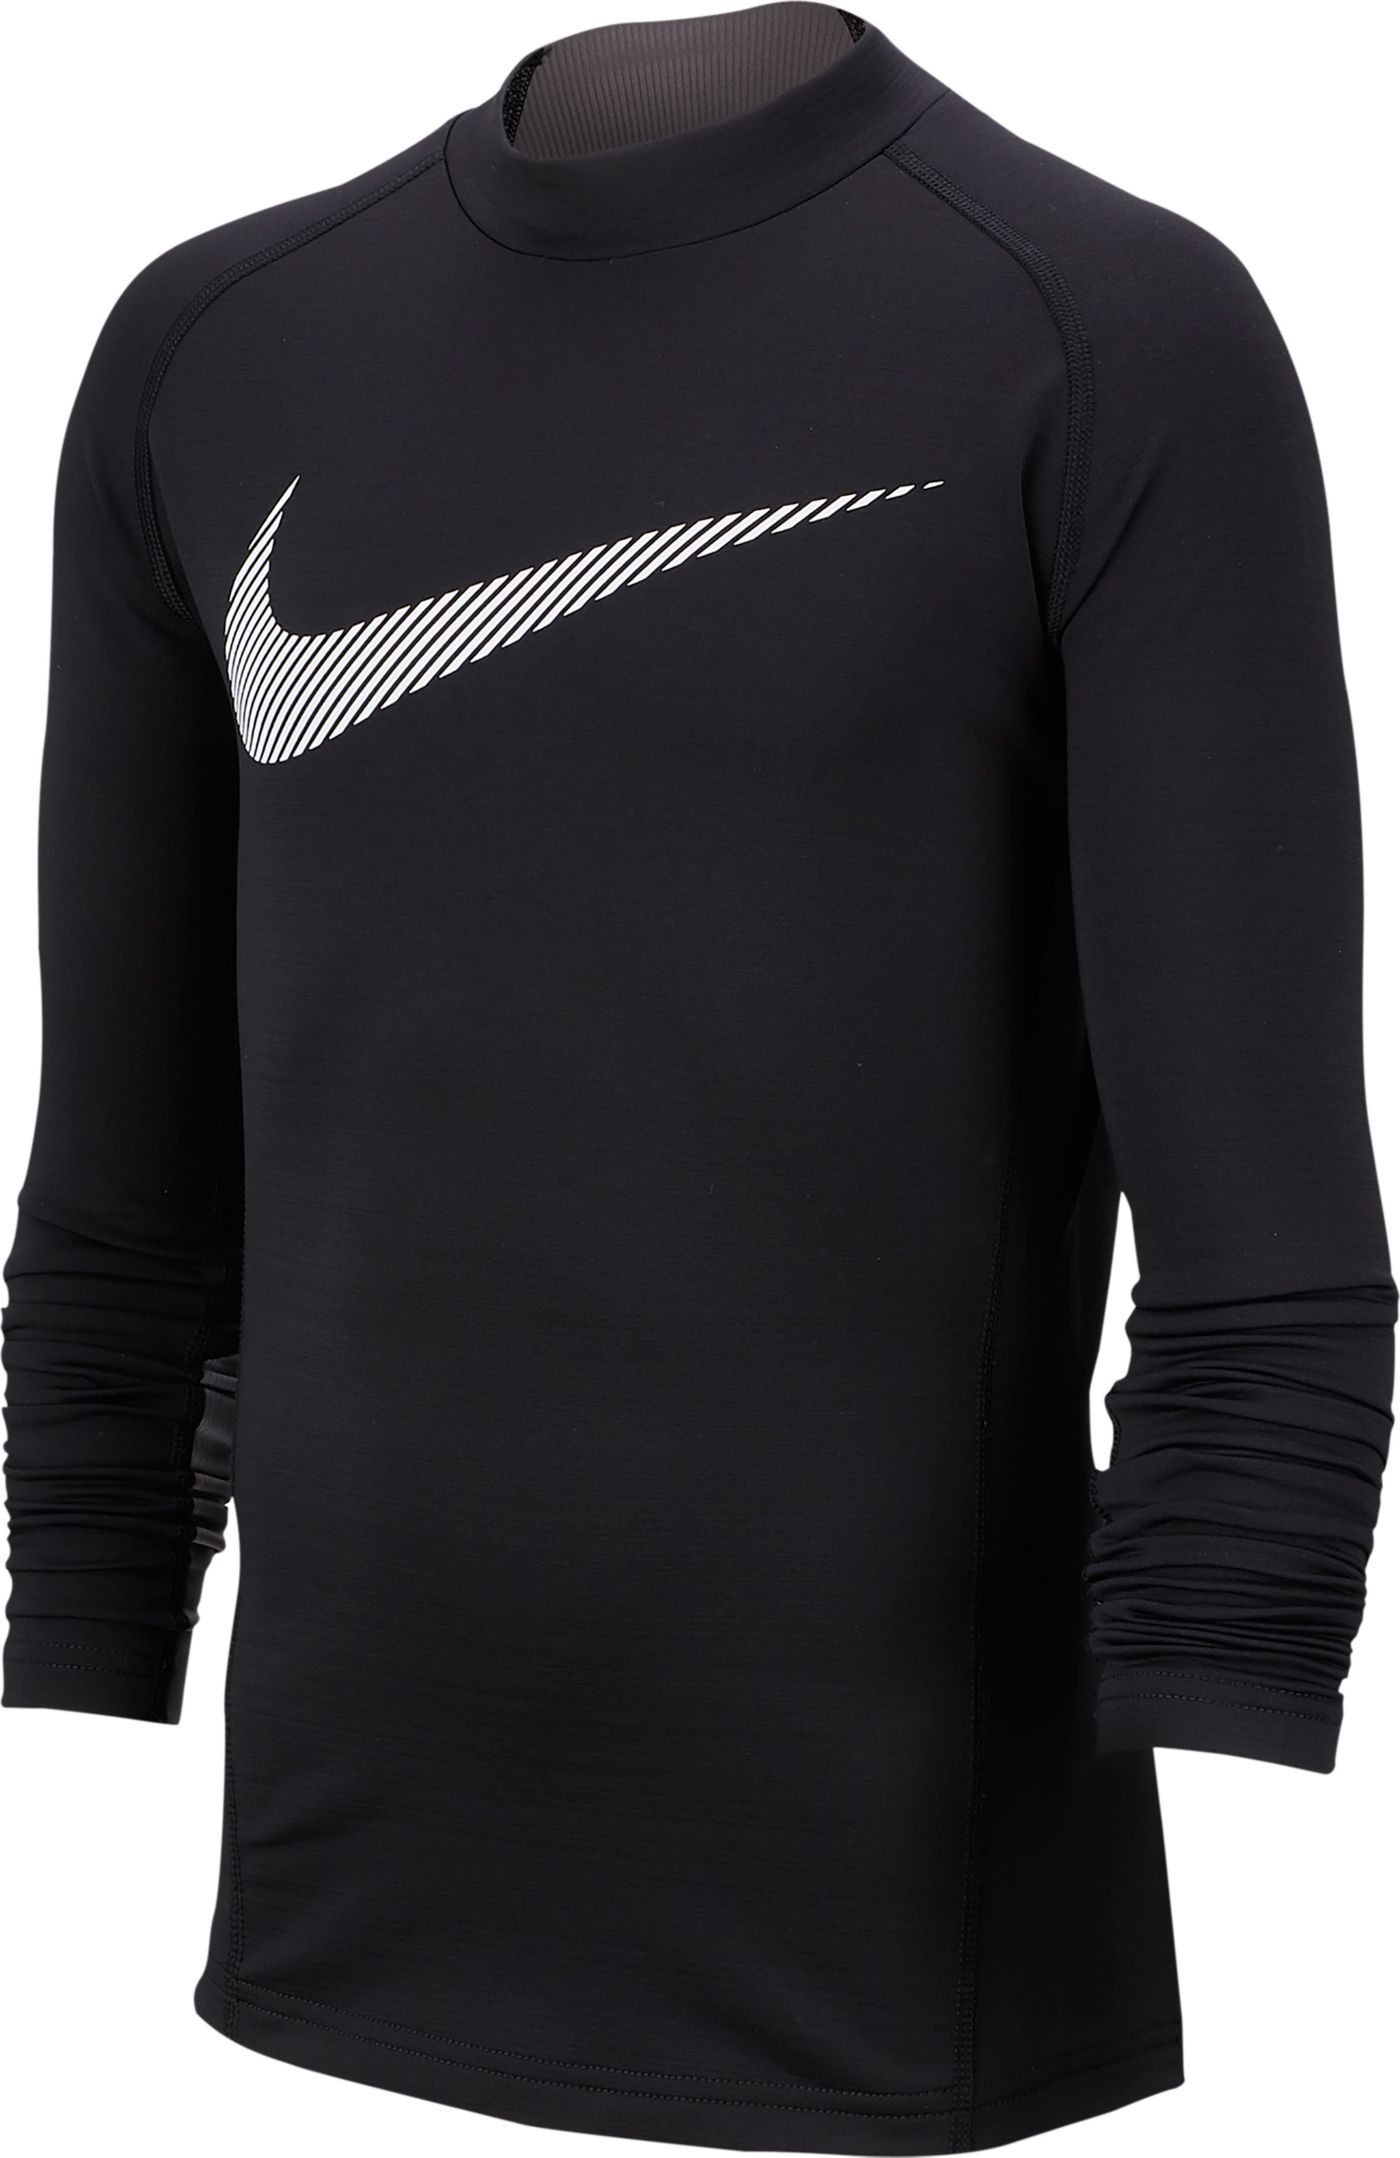 Nike Boys' Pro Warm Mock Neck Long Sleeve Shirt